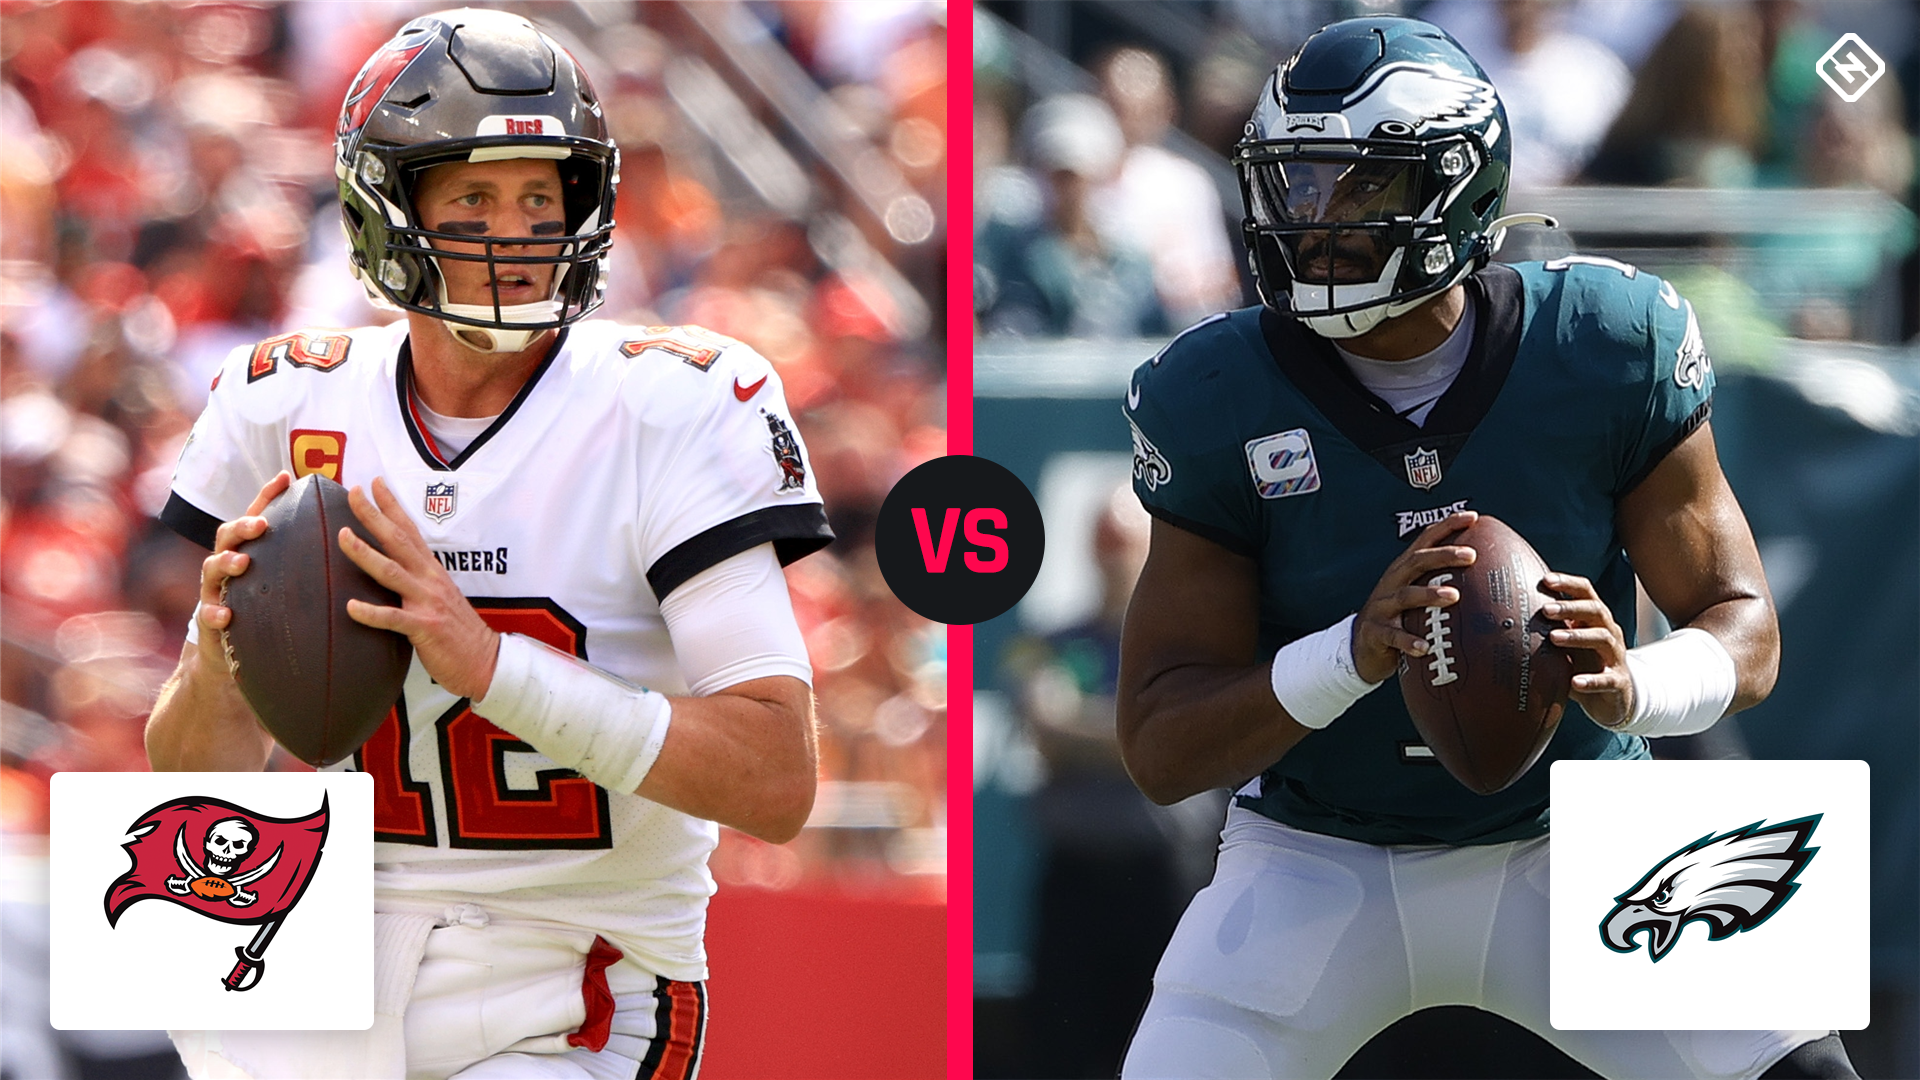 Eagles vs. Buccaneers odds, prediction, betting trends for NFL 'Thursday Night Football'